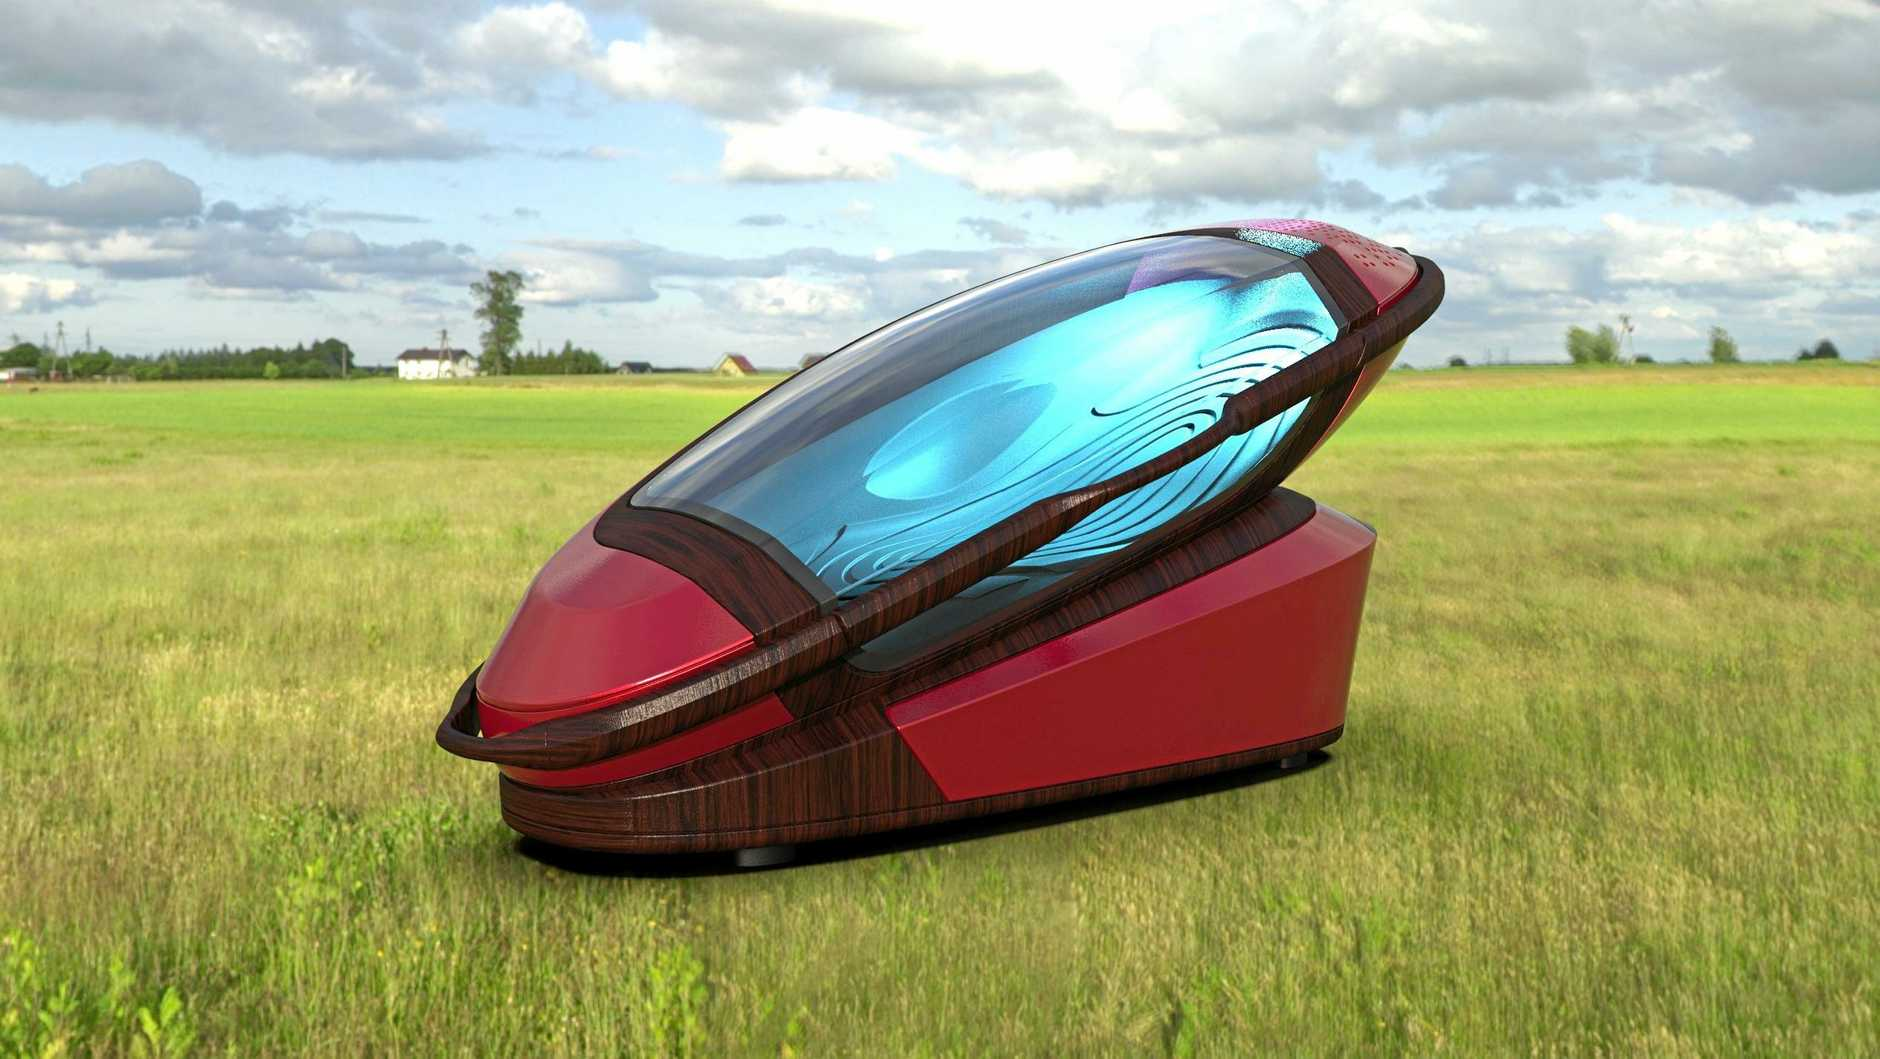 The Sarco machine - a capsule designed to assist suicide. it can be manufactured with a 3D printer and the base can be re-used.